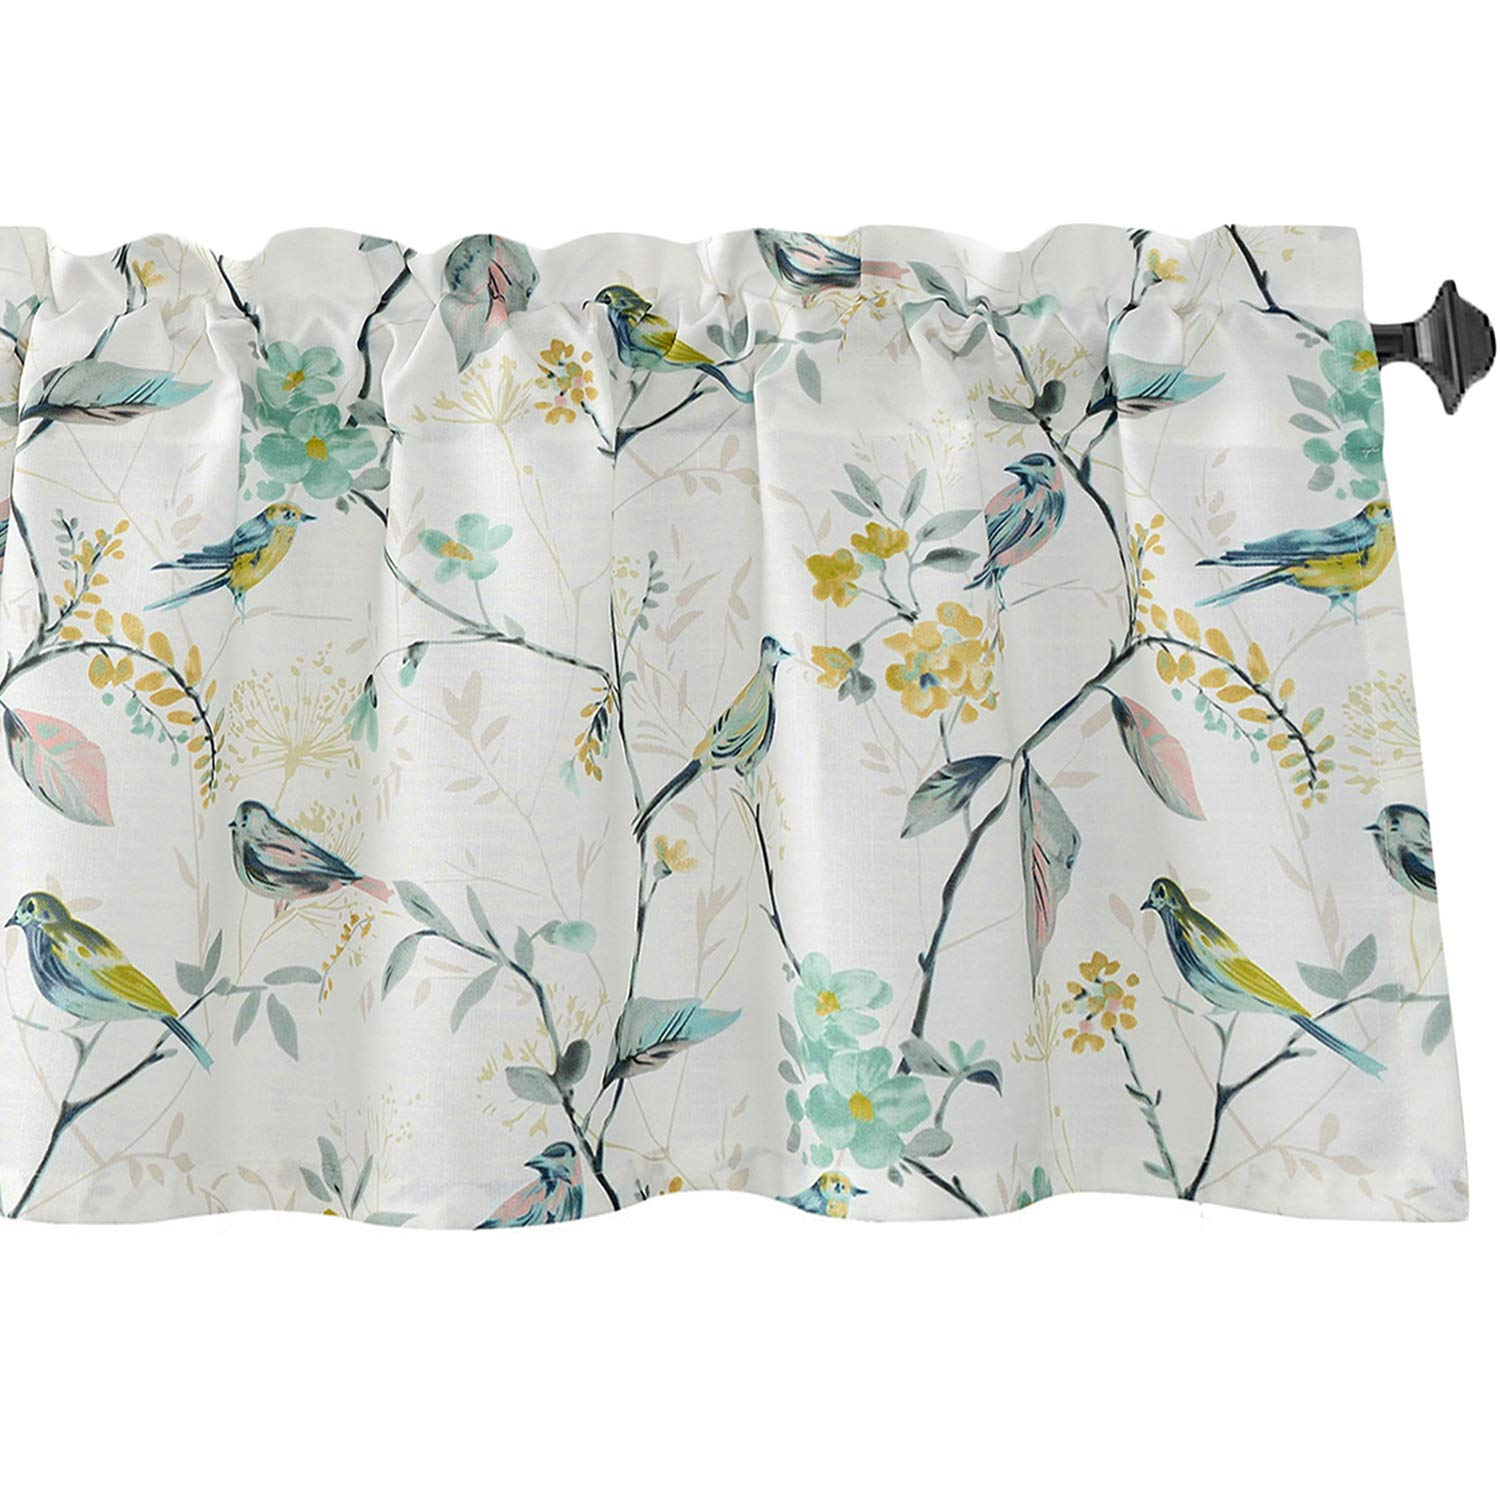 VOGOL Bird Pattern Kitchen Valances for Windows, Window Valance Curtains for Living Room Bathroom Pocket Valance 52 Inch Wide by 18 Inch Long